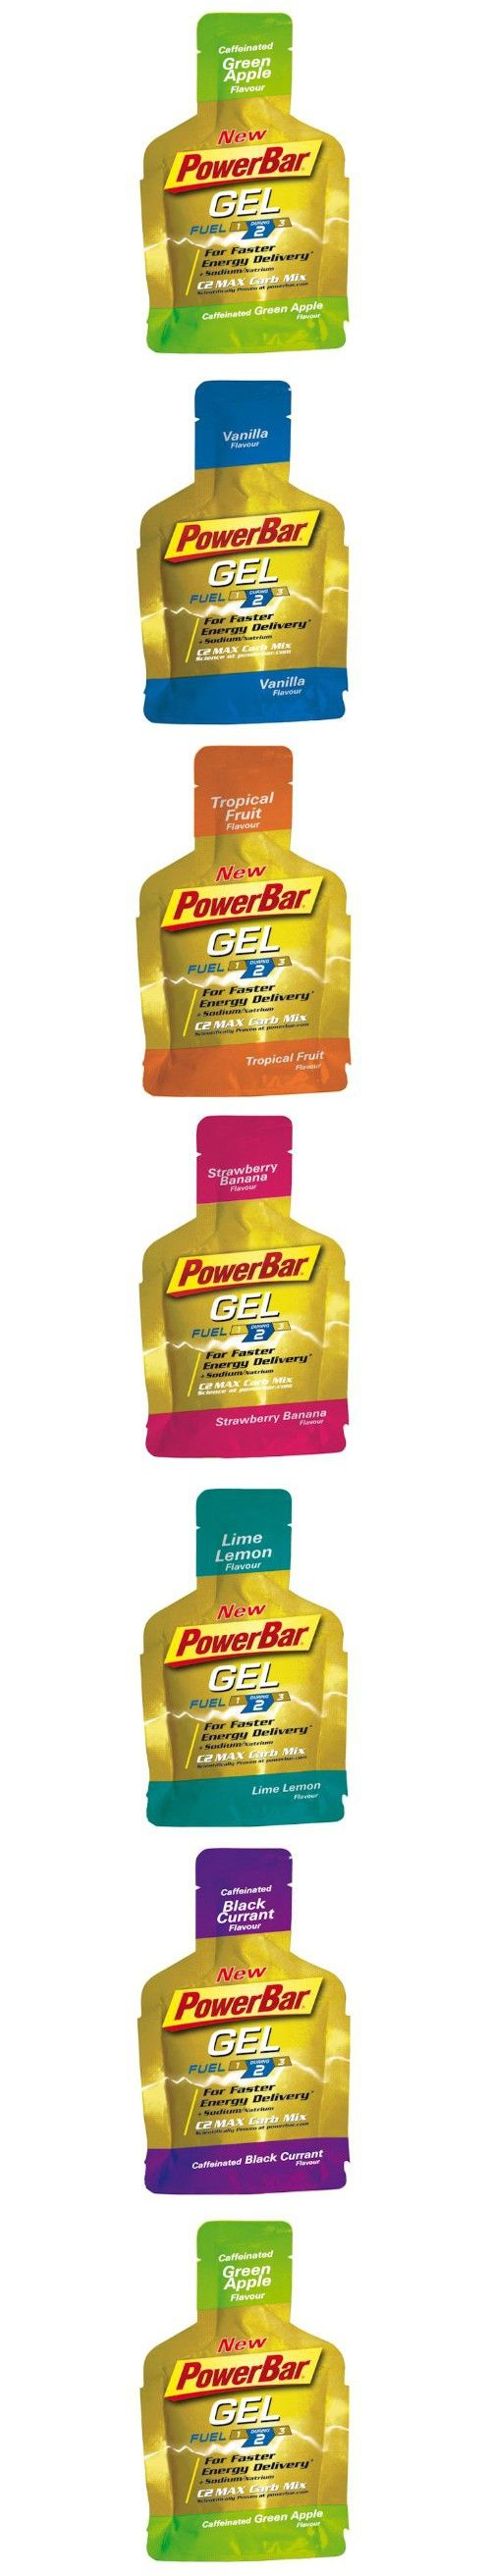 POWERBAR Gel - 41g Single by Power Bar